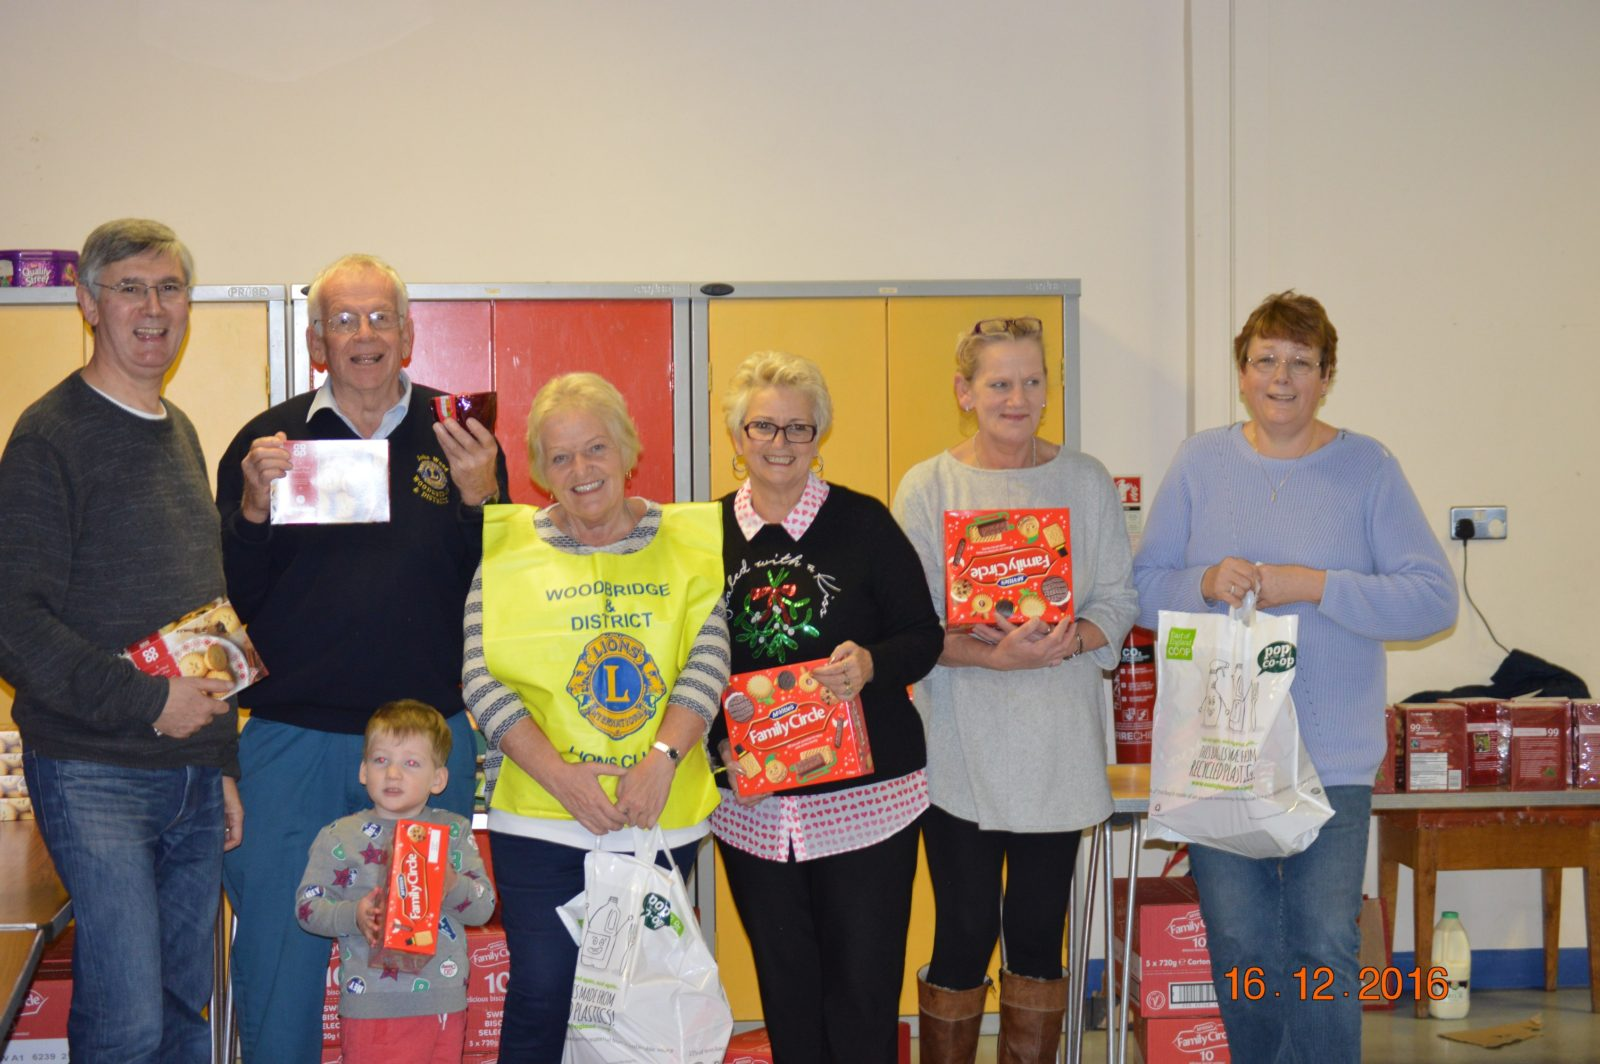 Woodbridge Rotary - The Annual Christmas Parcels